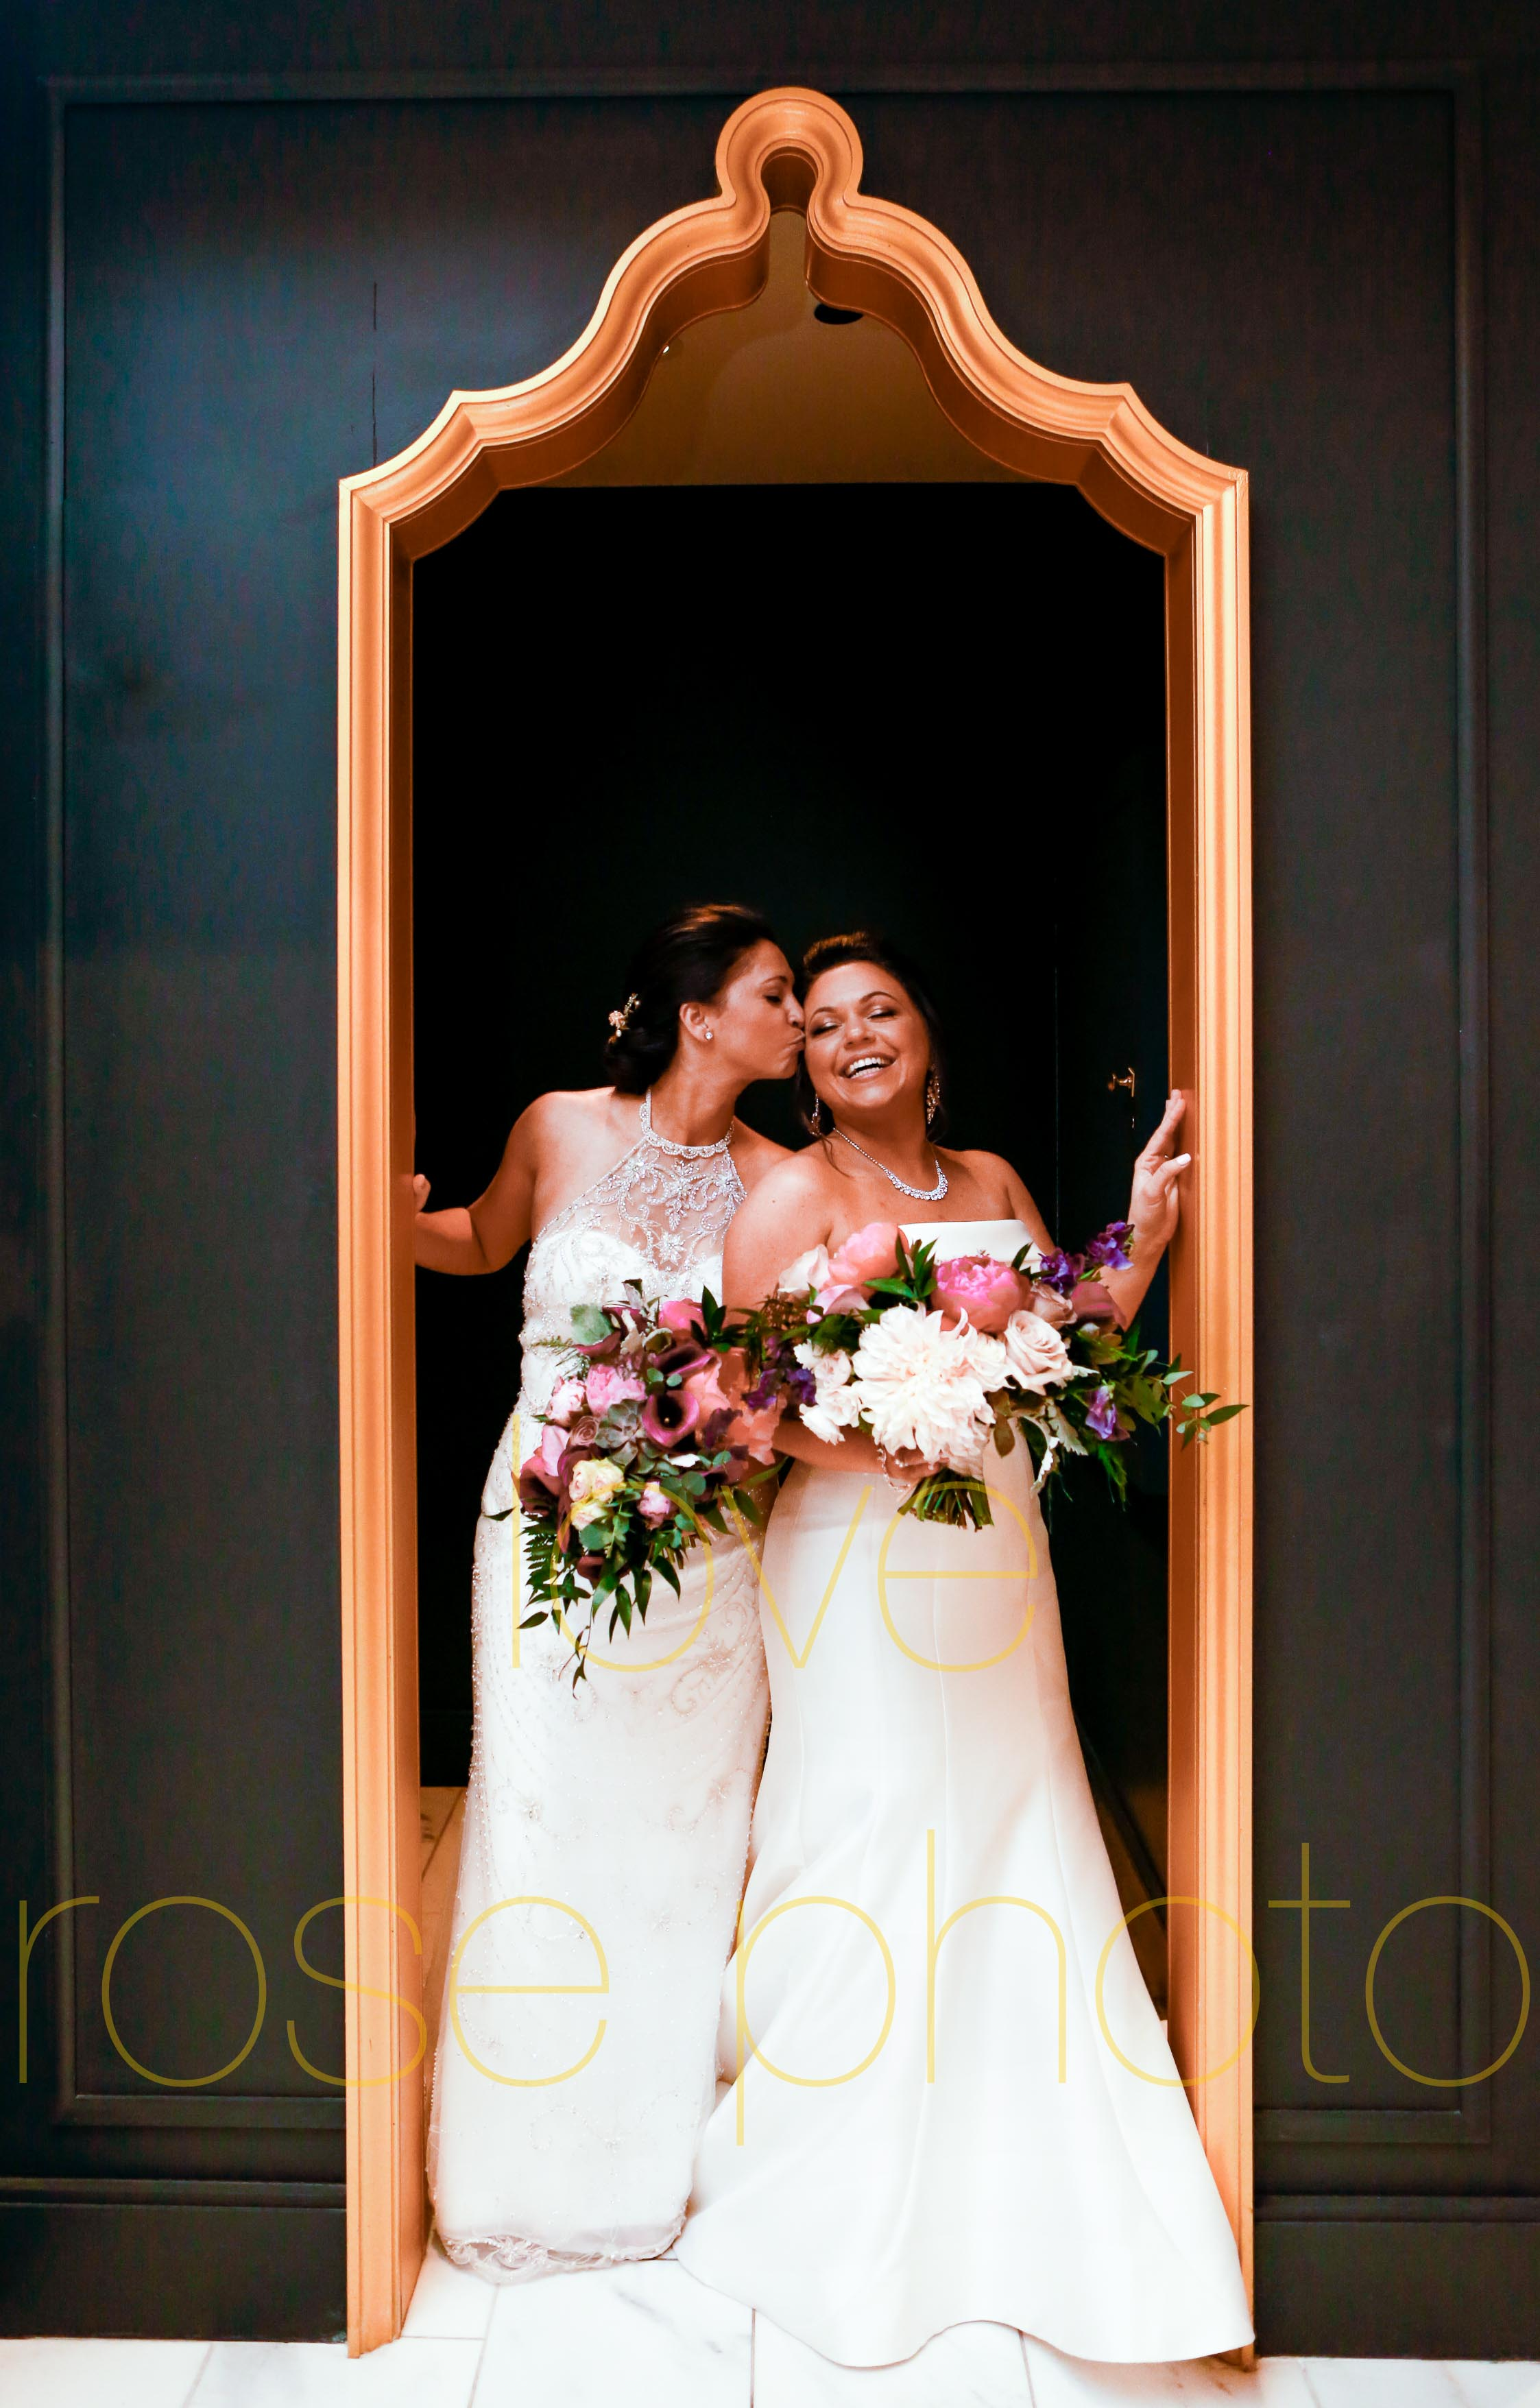 sophie + melissa love rose photo gay wedding chicago pride 2019 -35.jpg